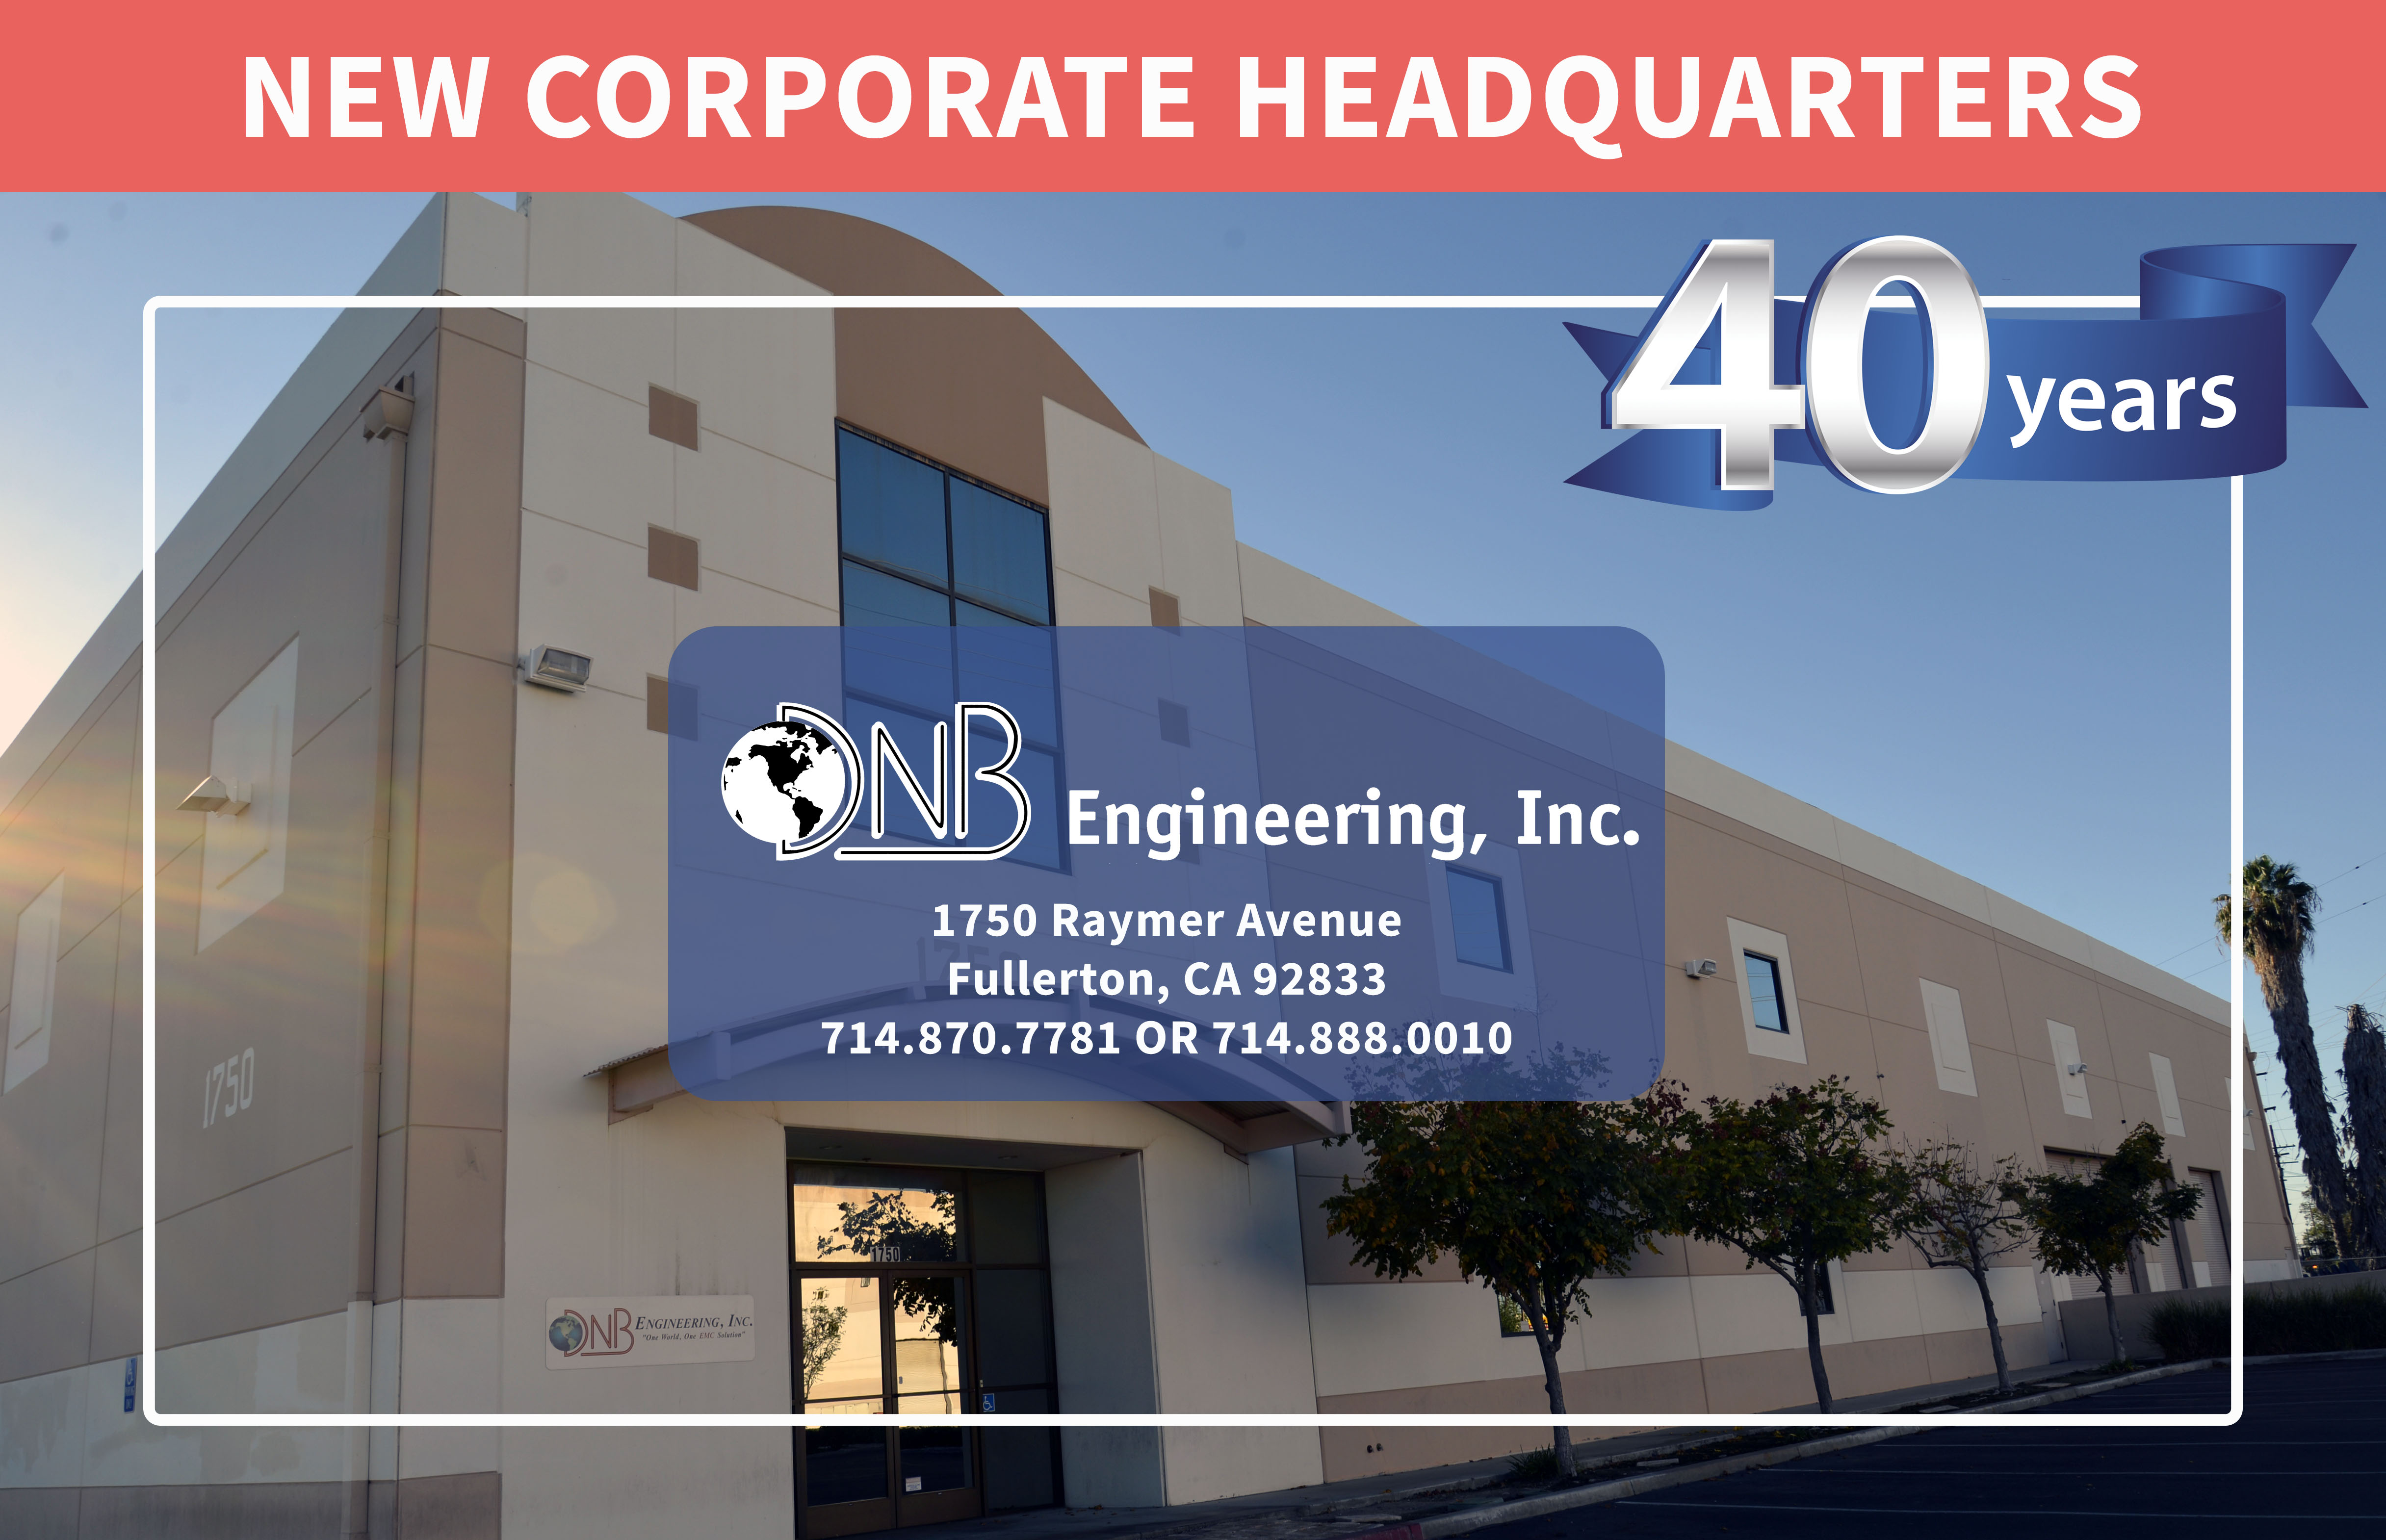 DNB_Engineering_NewCorporateHeadquarters-Fullerton.jpg